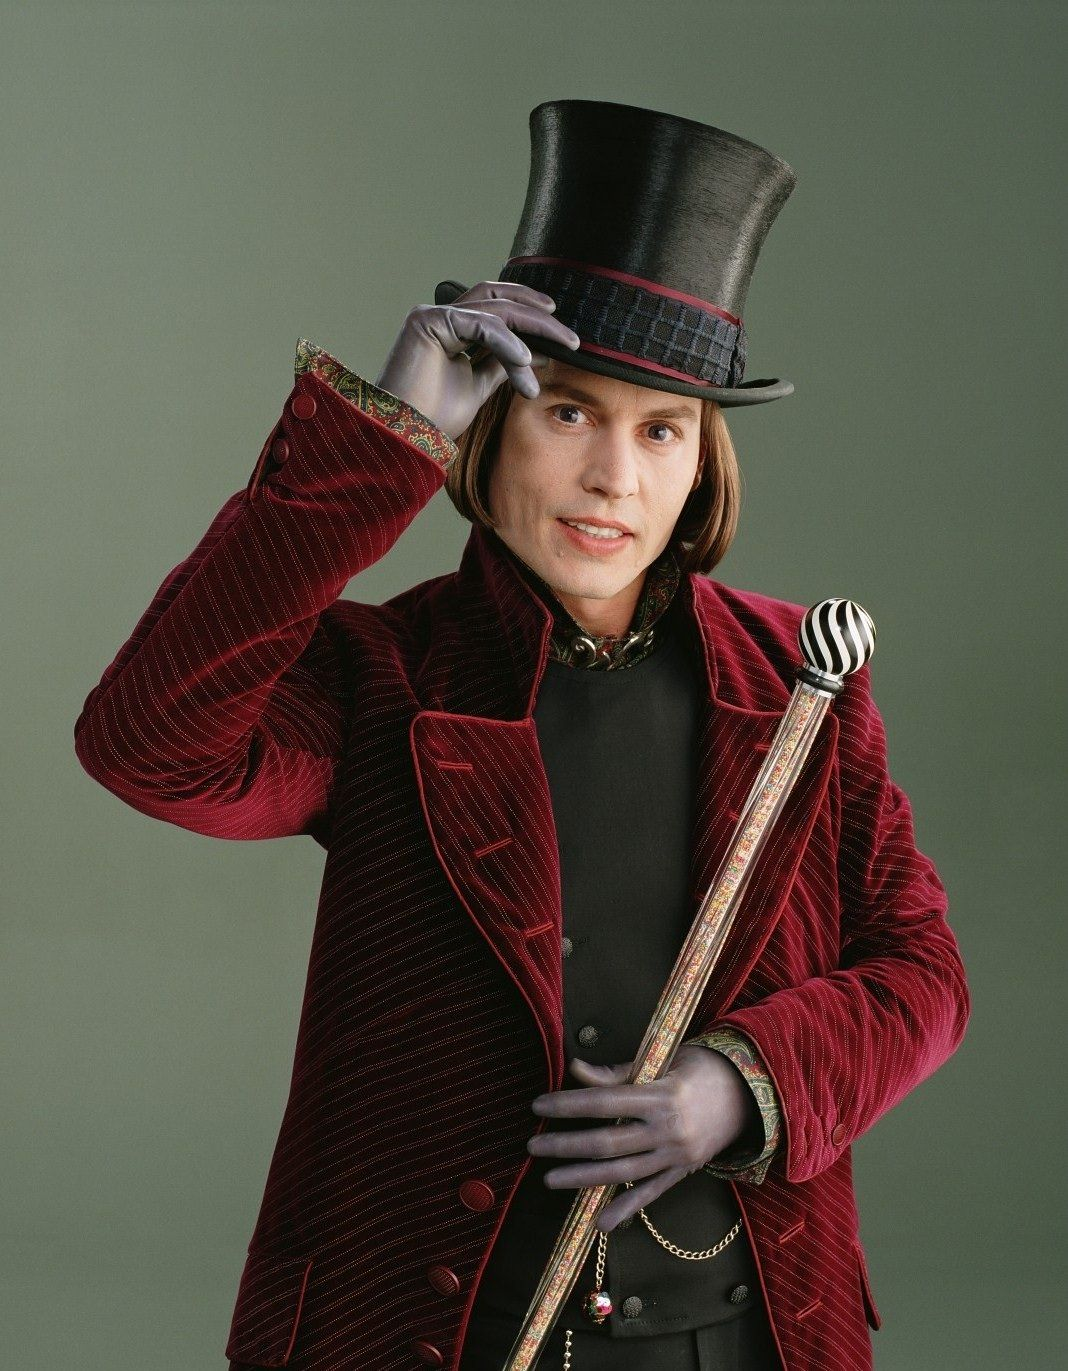 Charlie And Chocolate Factory. Johnny Depp Willy Wonka. Costumes Gabriella Pescucci